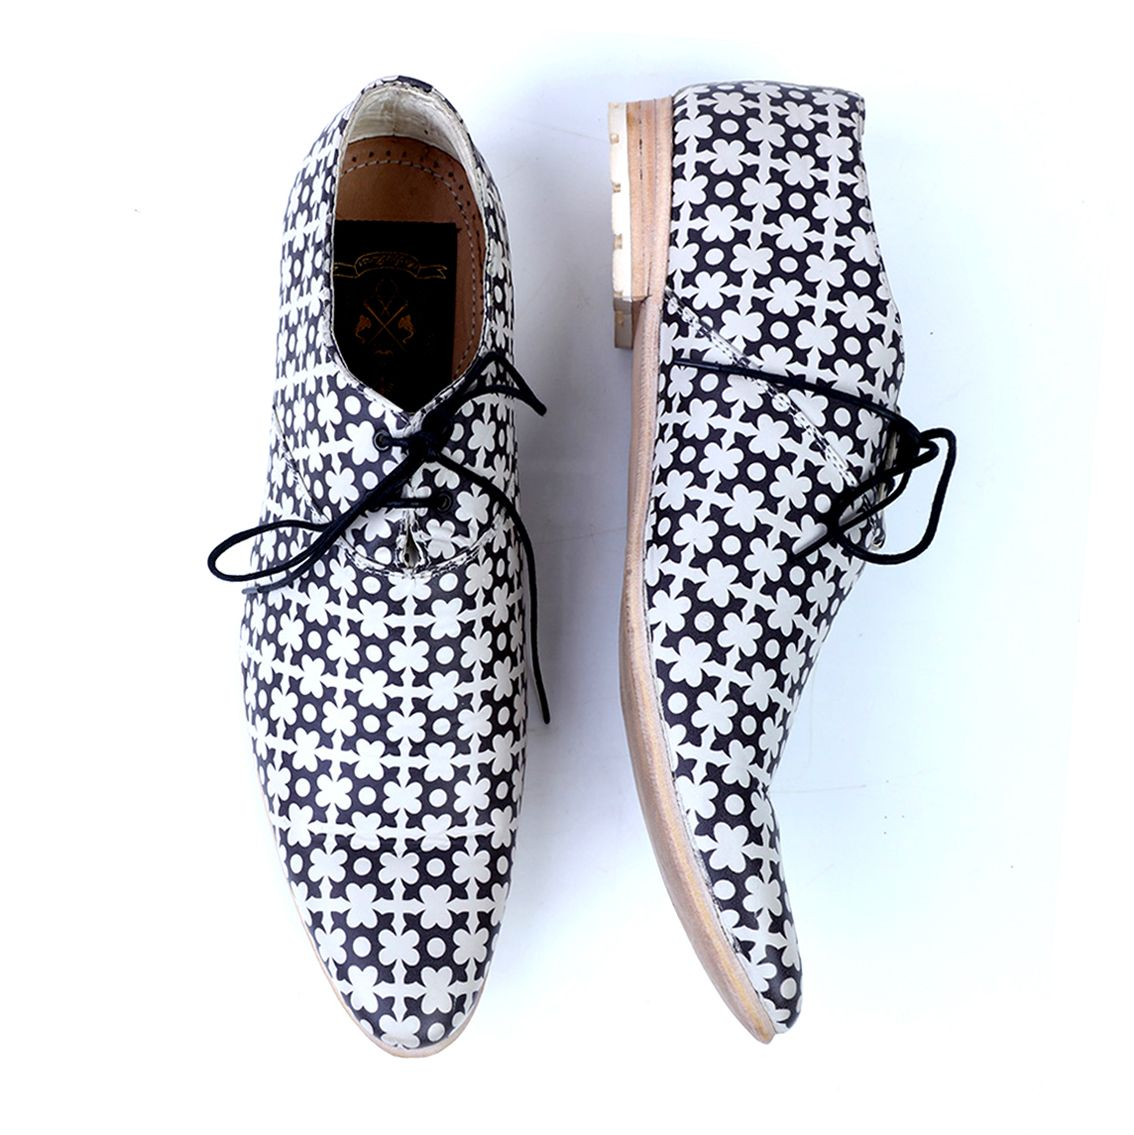 Fateh Handcrafted Leather Printed Shoes